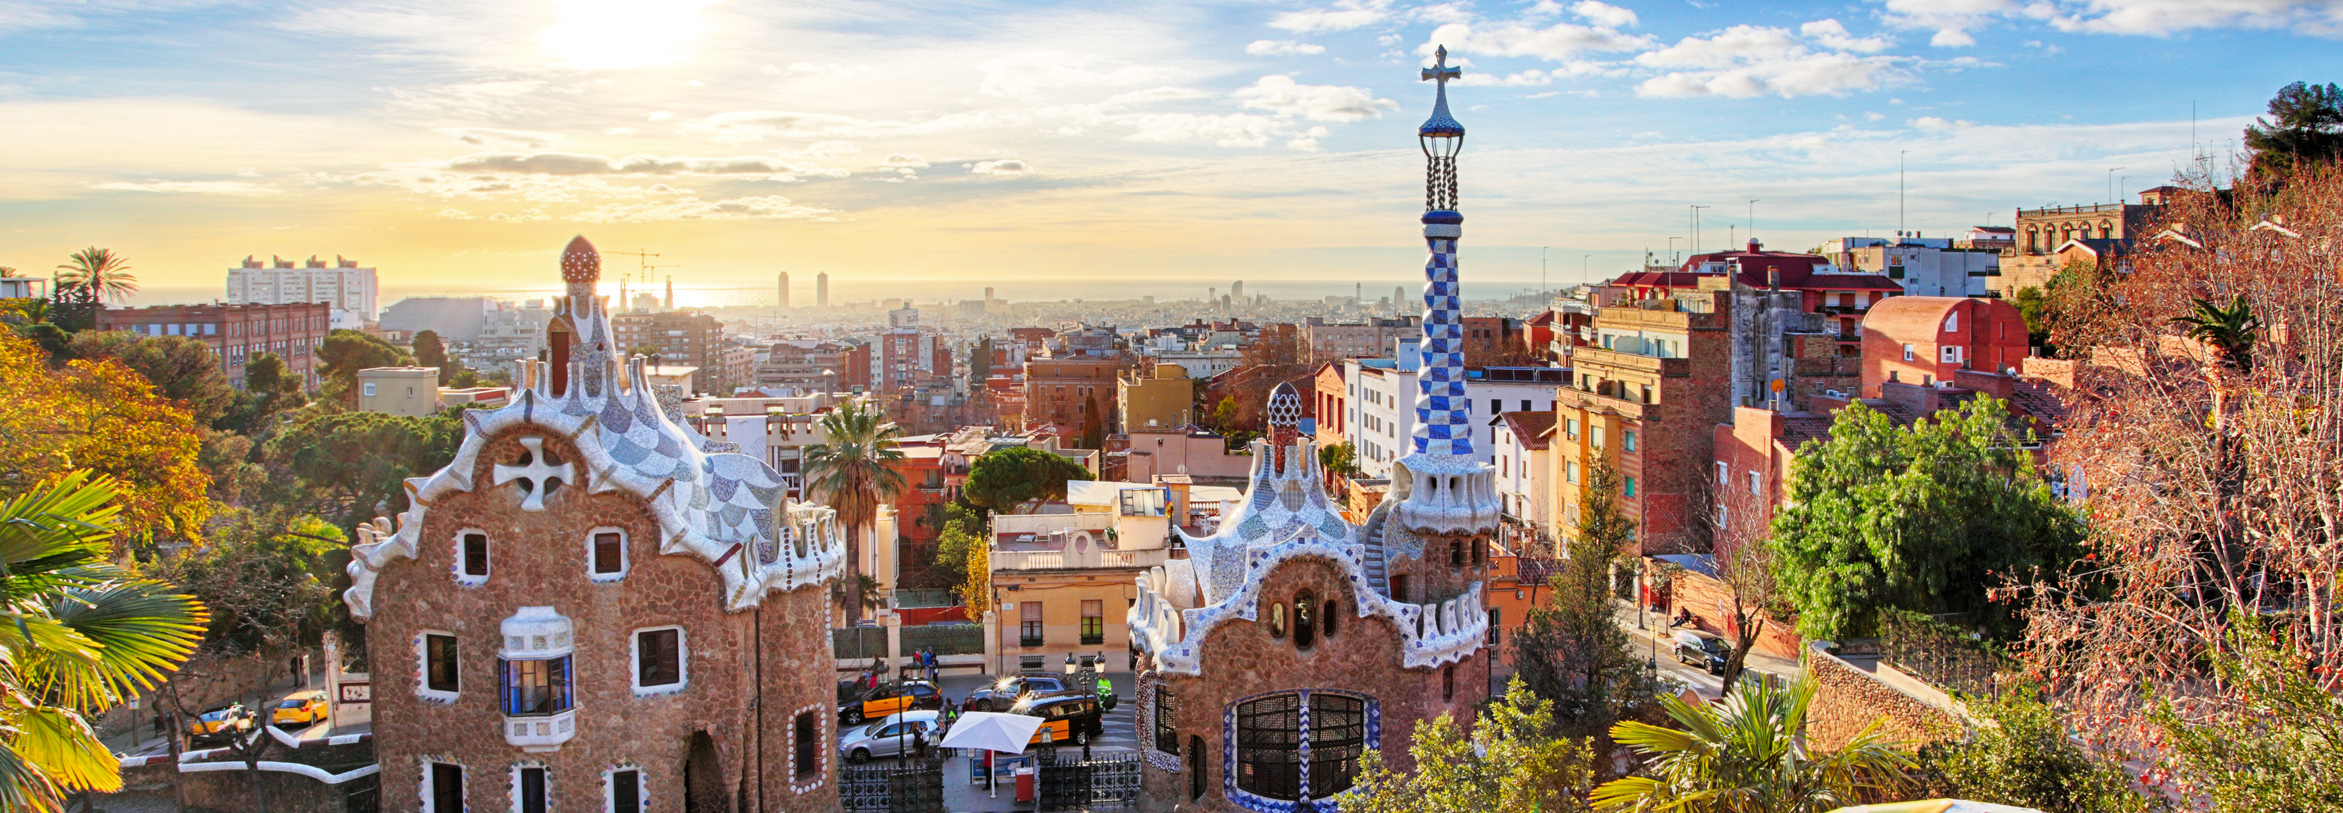 Catalonia Luxury Travel - Catalonia Holiday - Barcelona - Ker & Downey